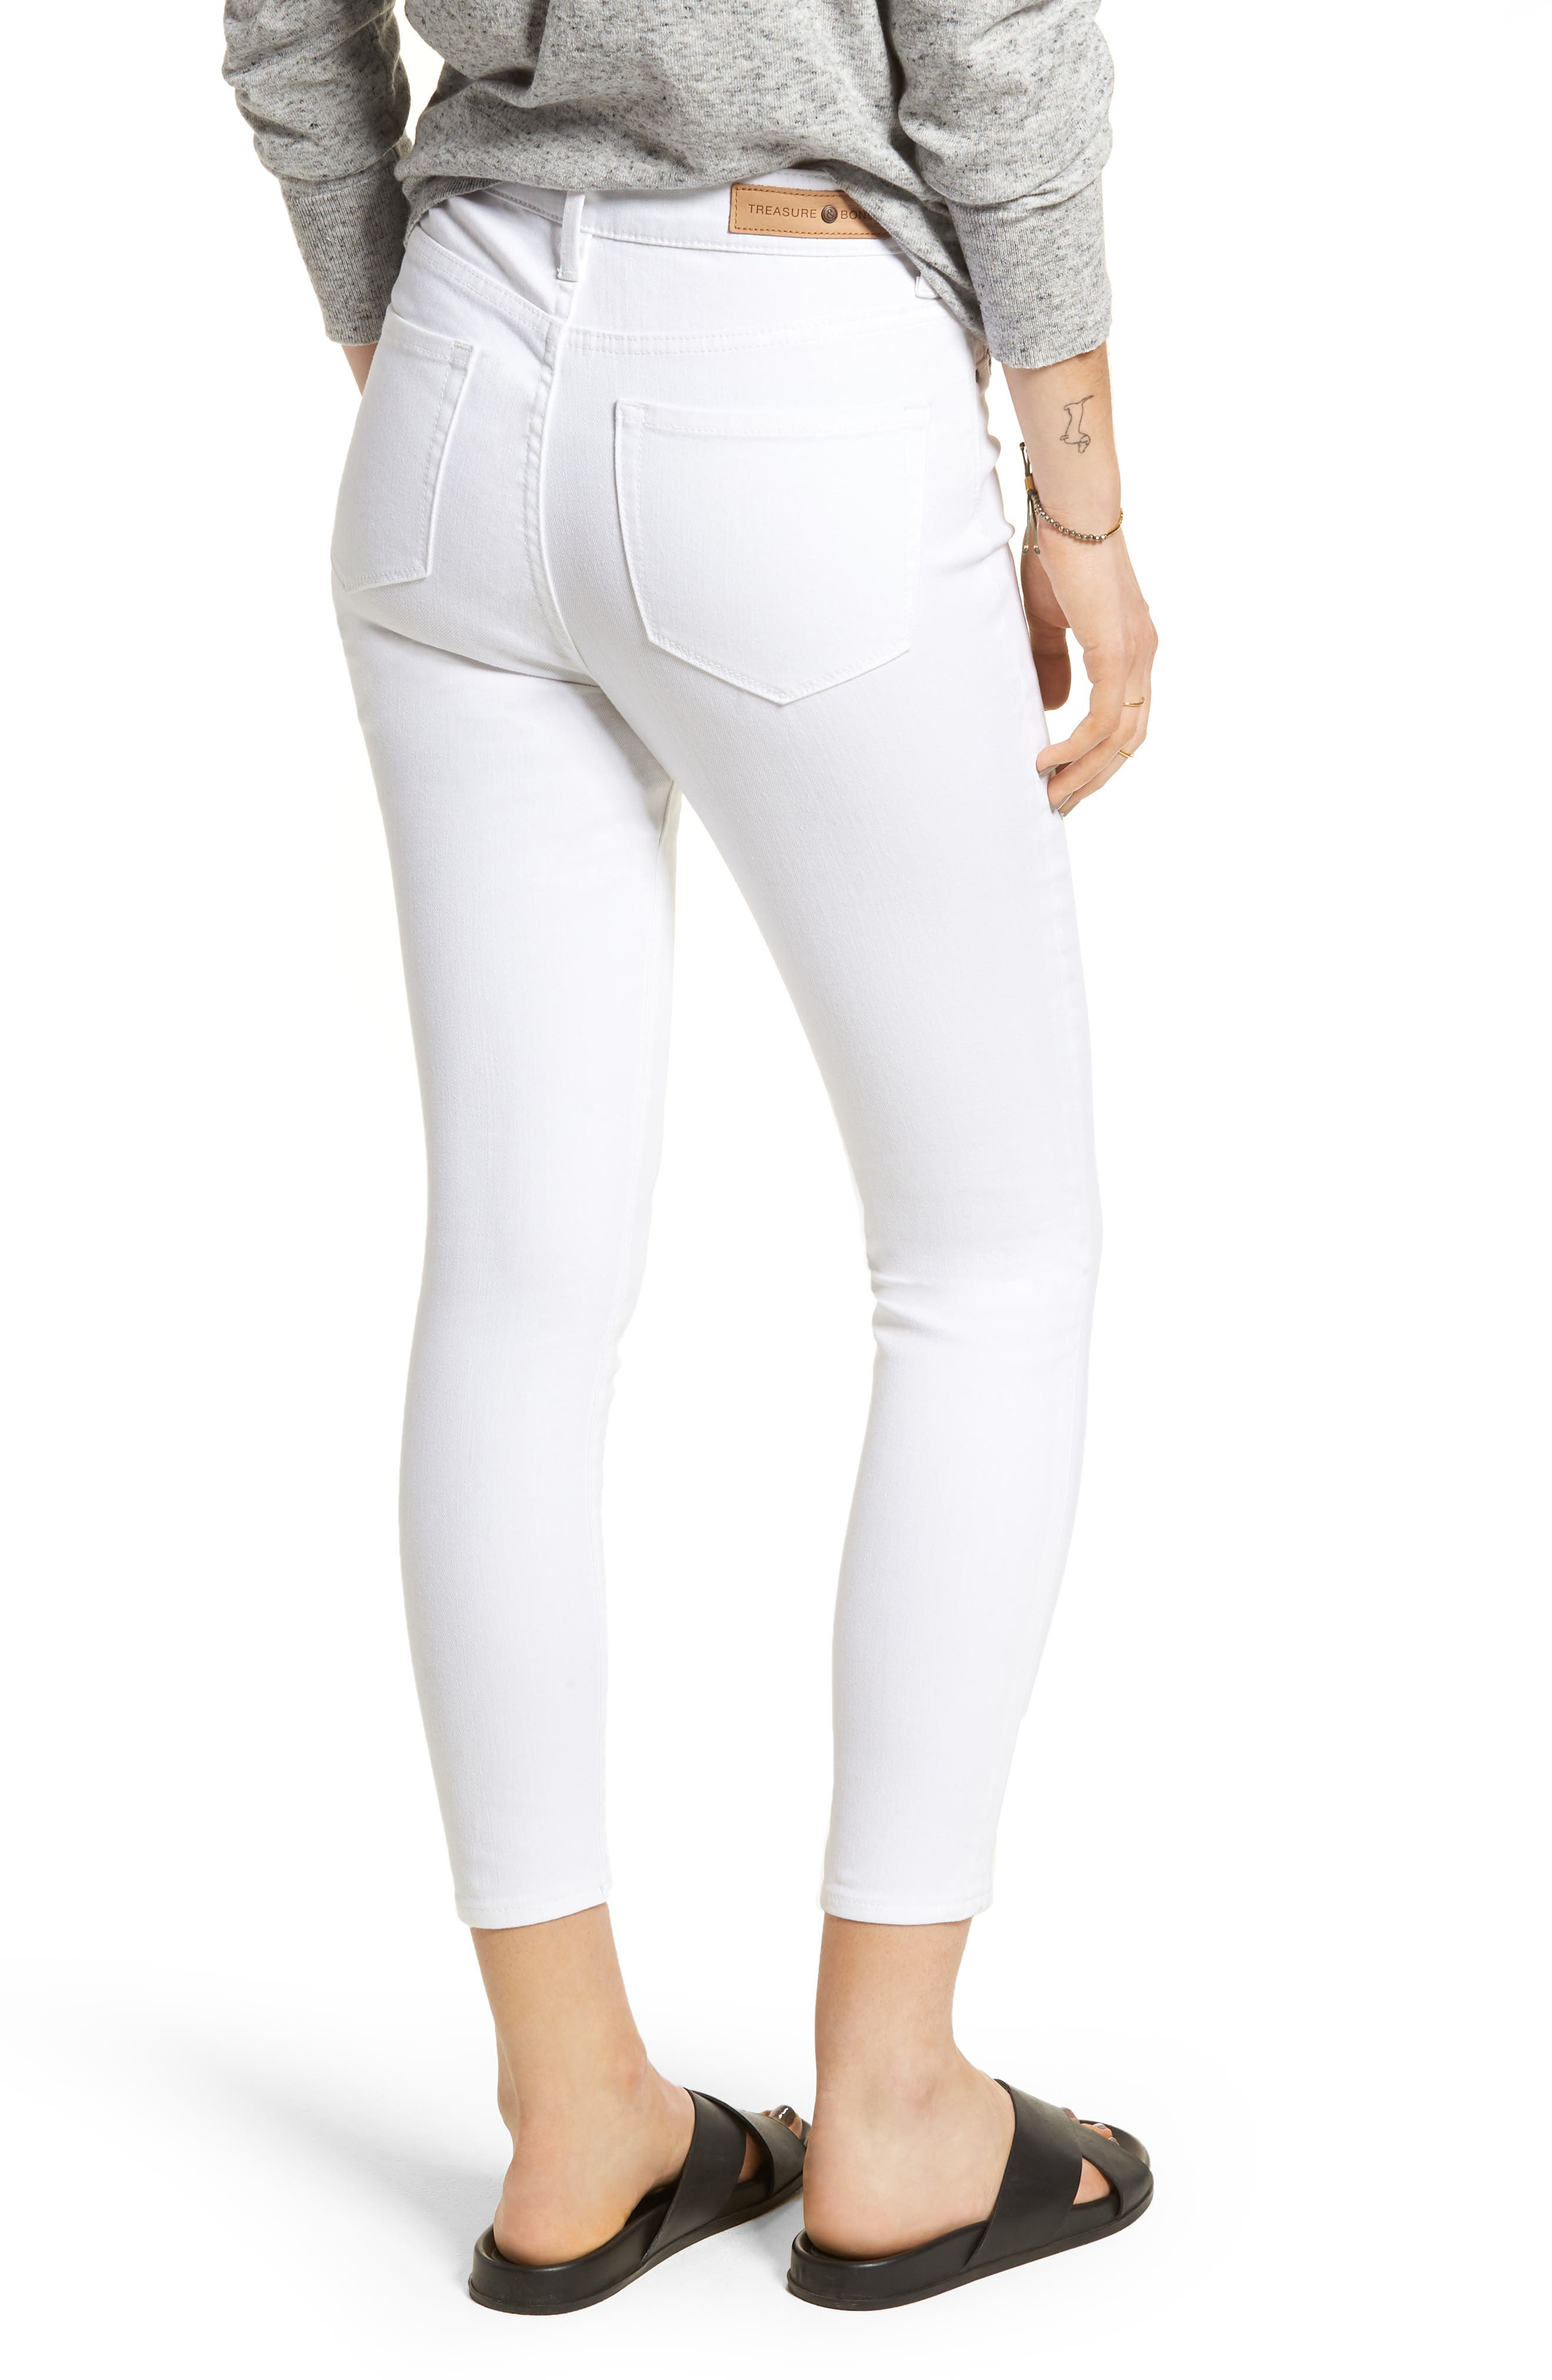 Charity High Waist Crop Skinny Jeans,                             Alternate thumbnail 2, color,                             100